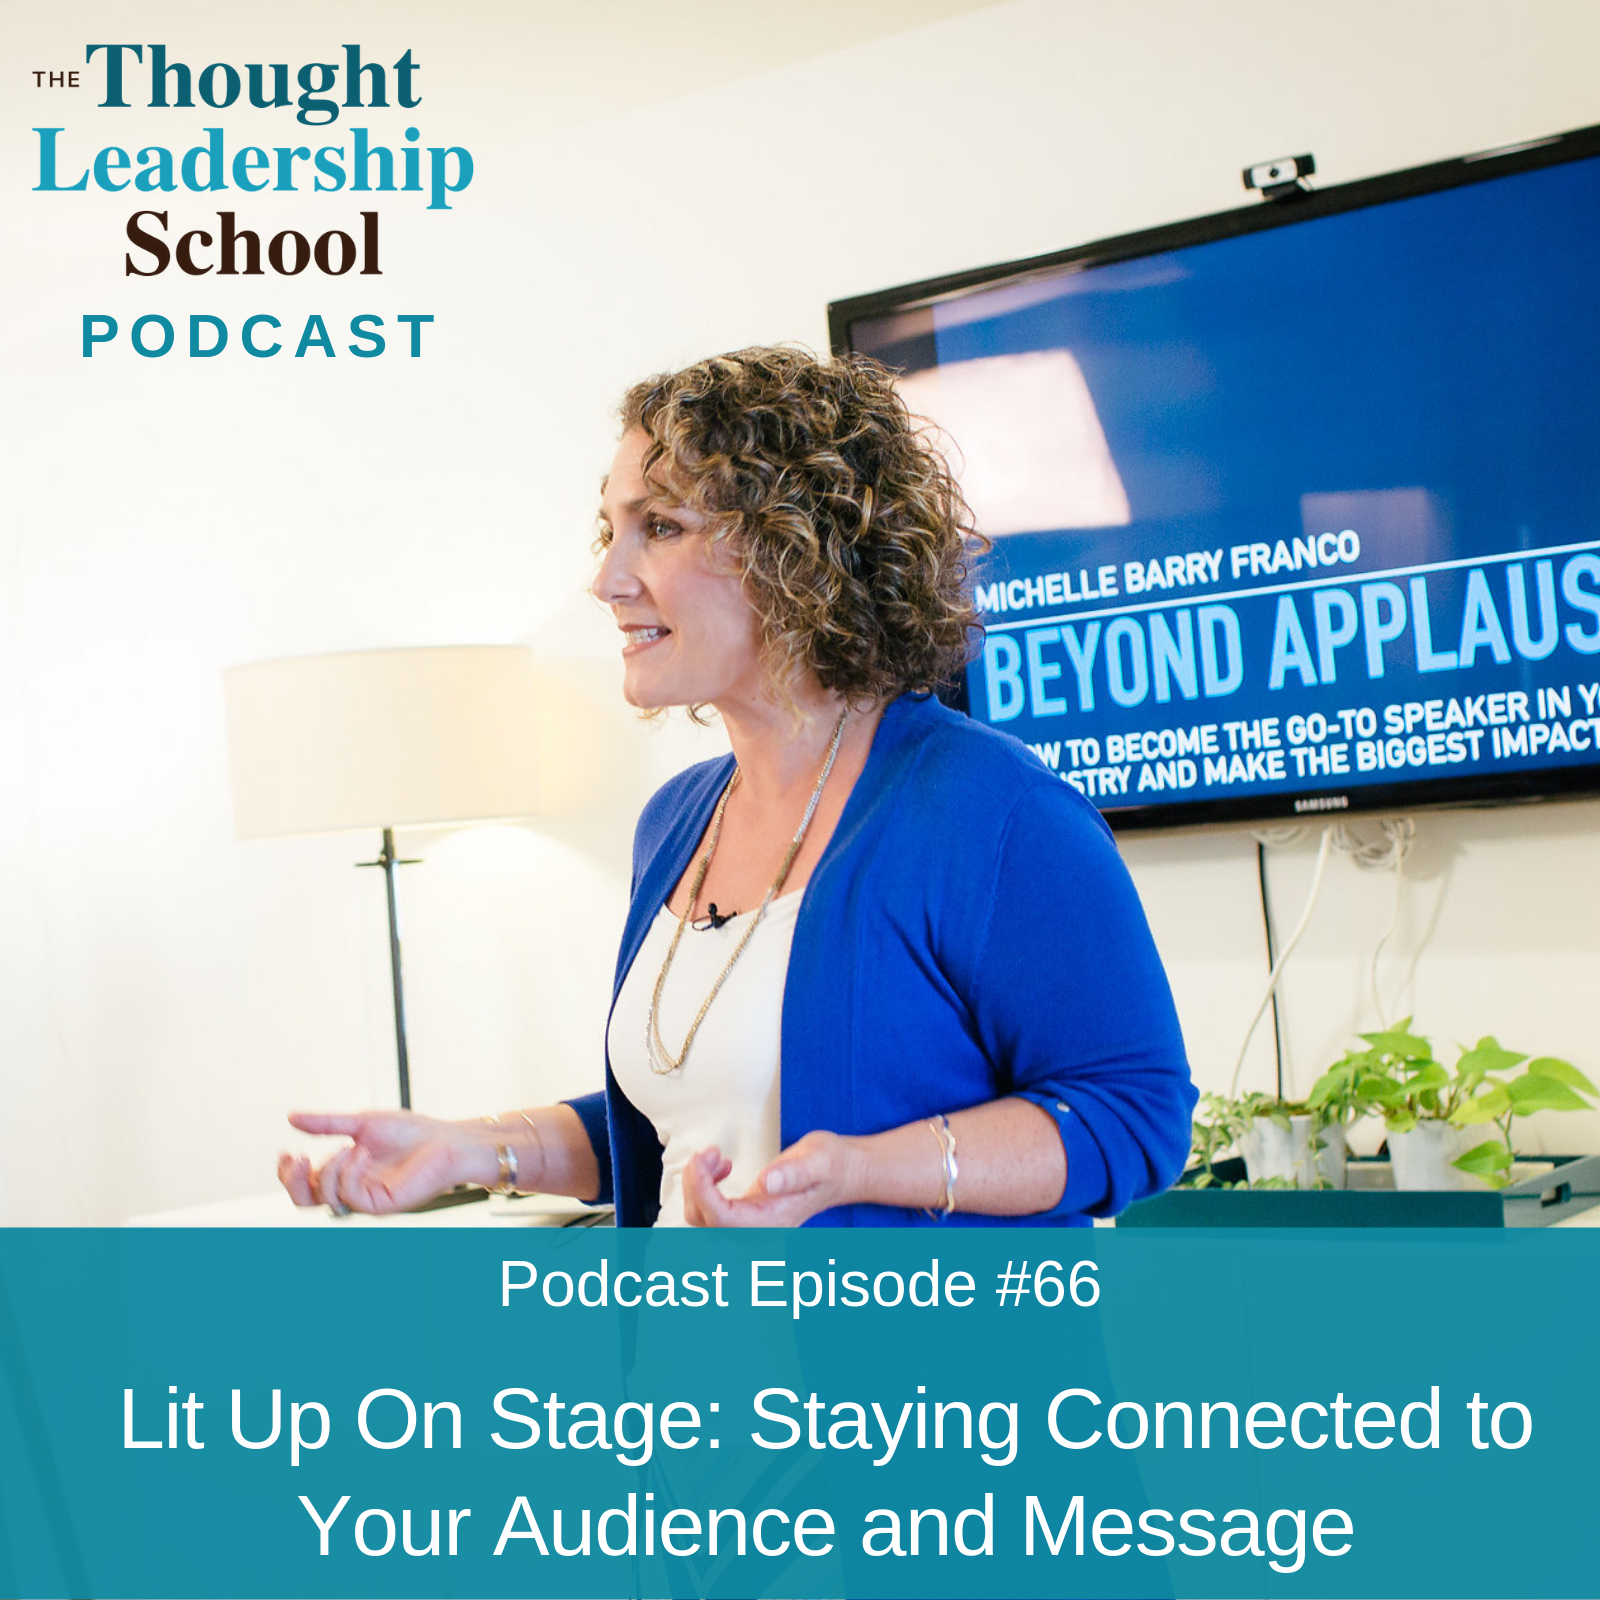 Ep #66: Lit Up On Stage: Staying Connected to Your Audience and Message